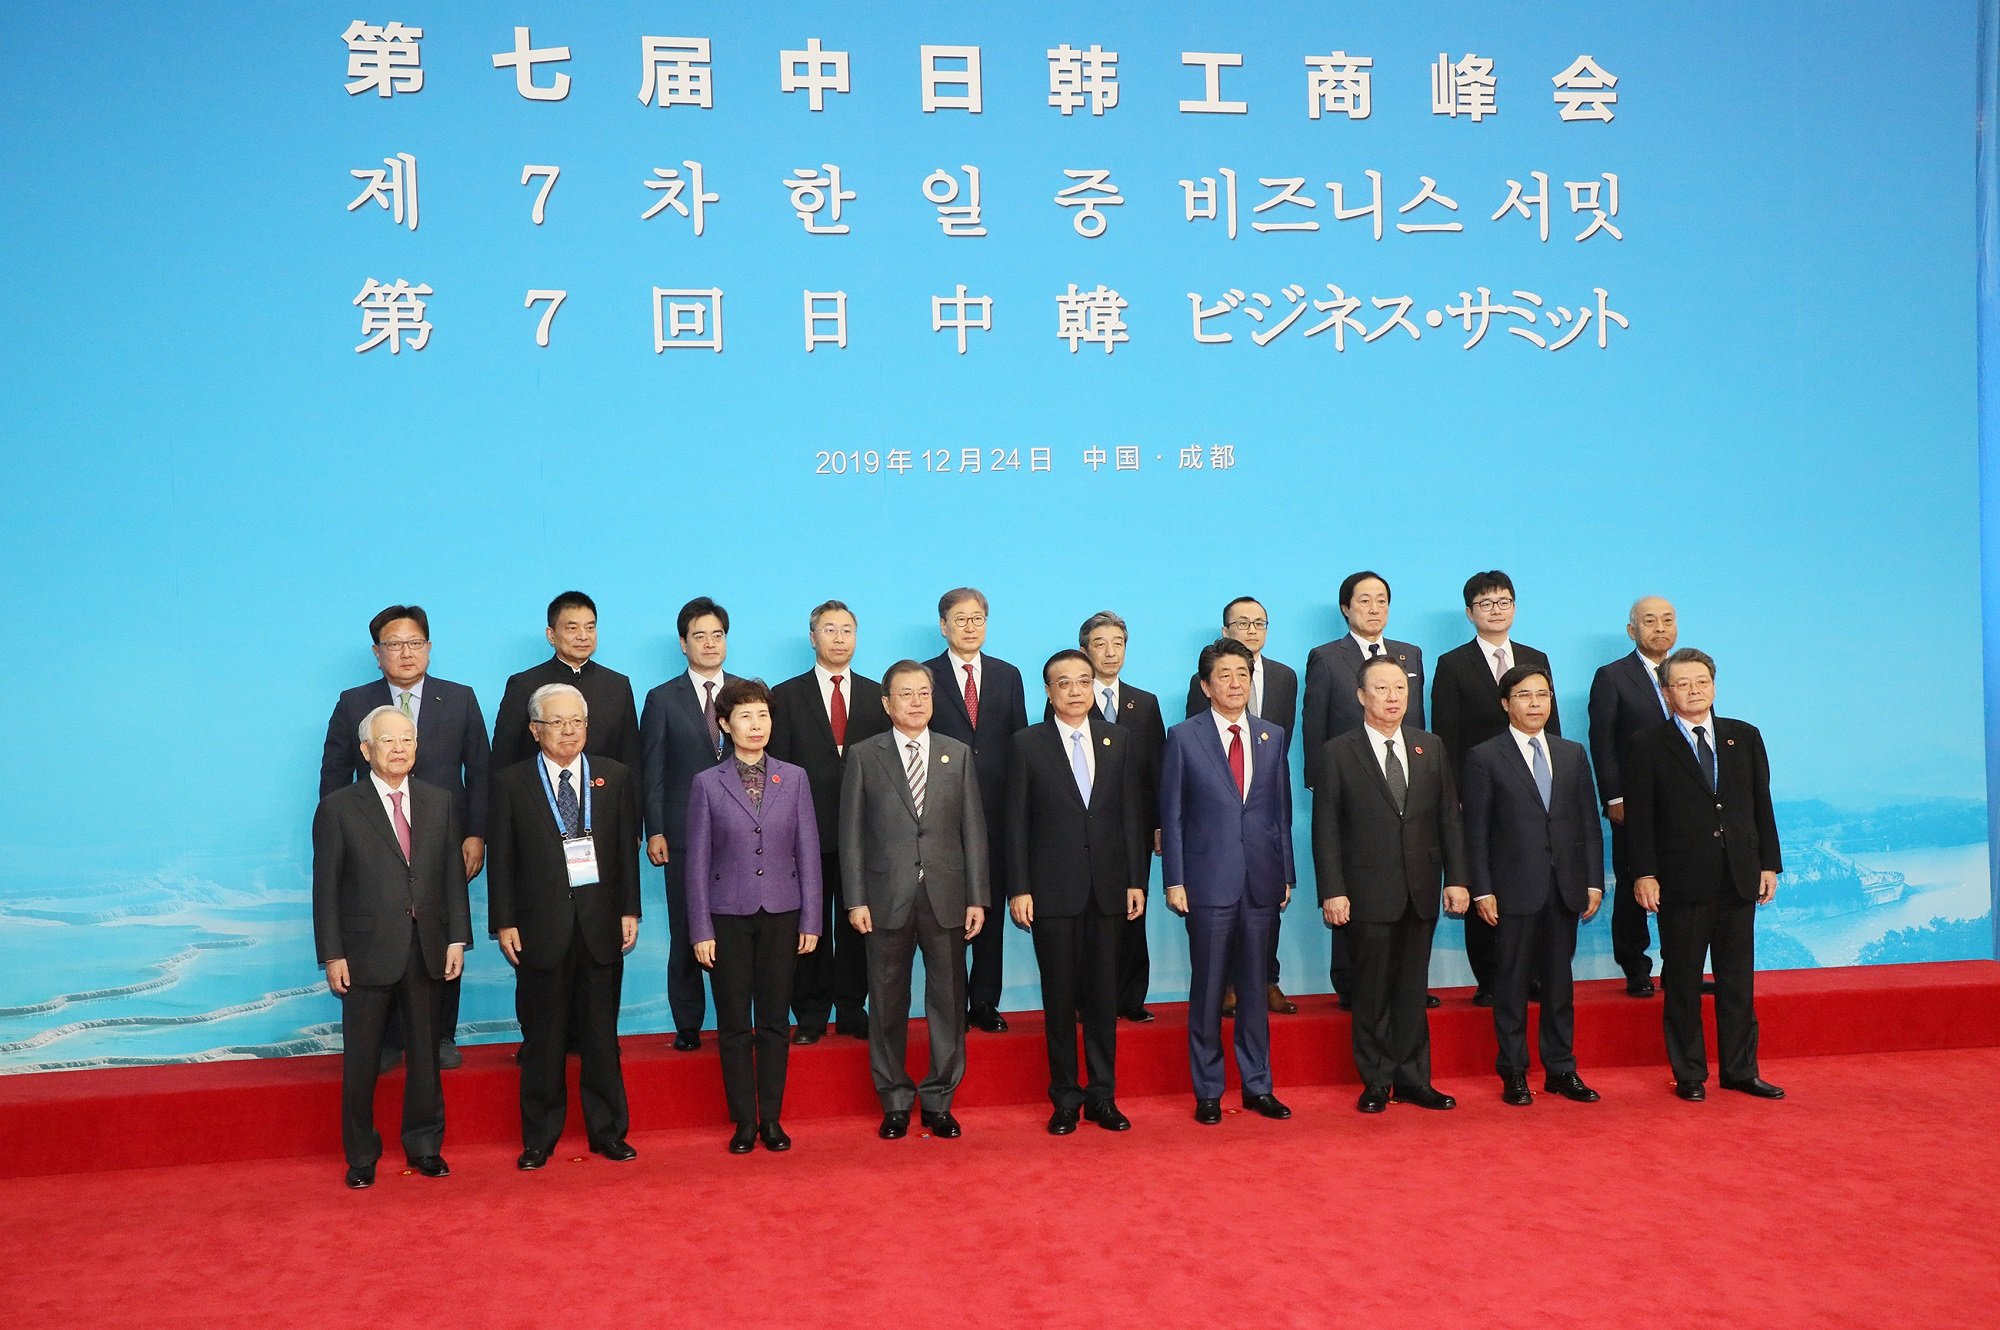 Photograph of the Japan-China-ROK Business Summit (2)